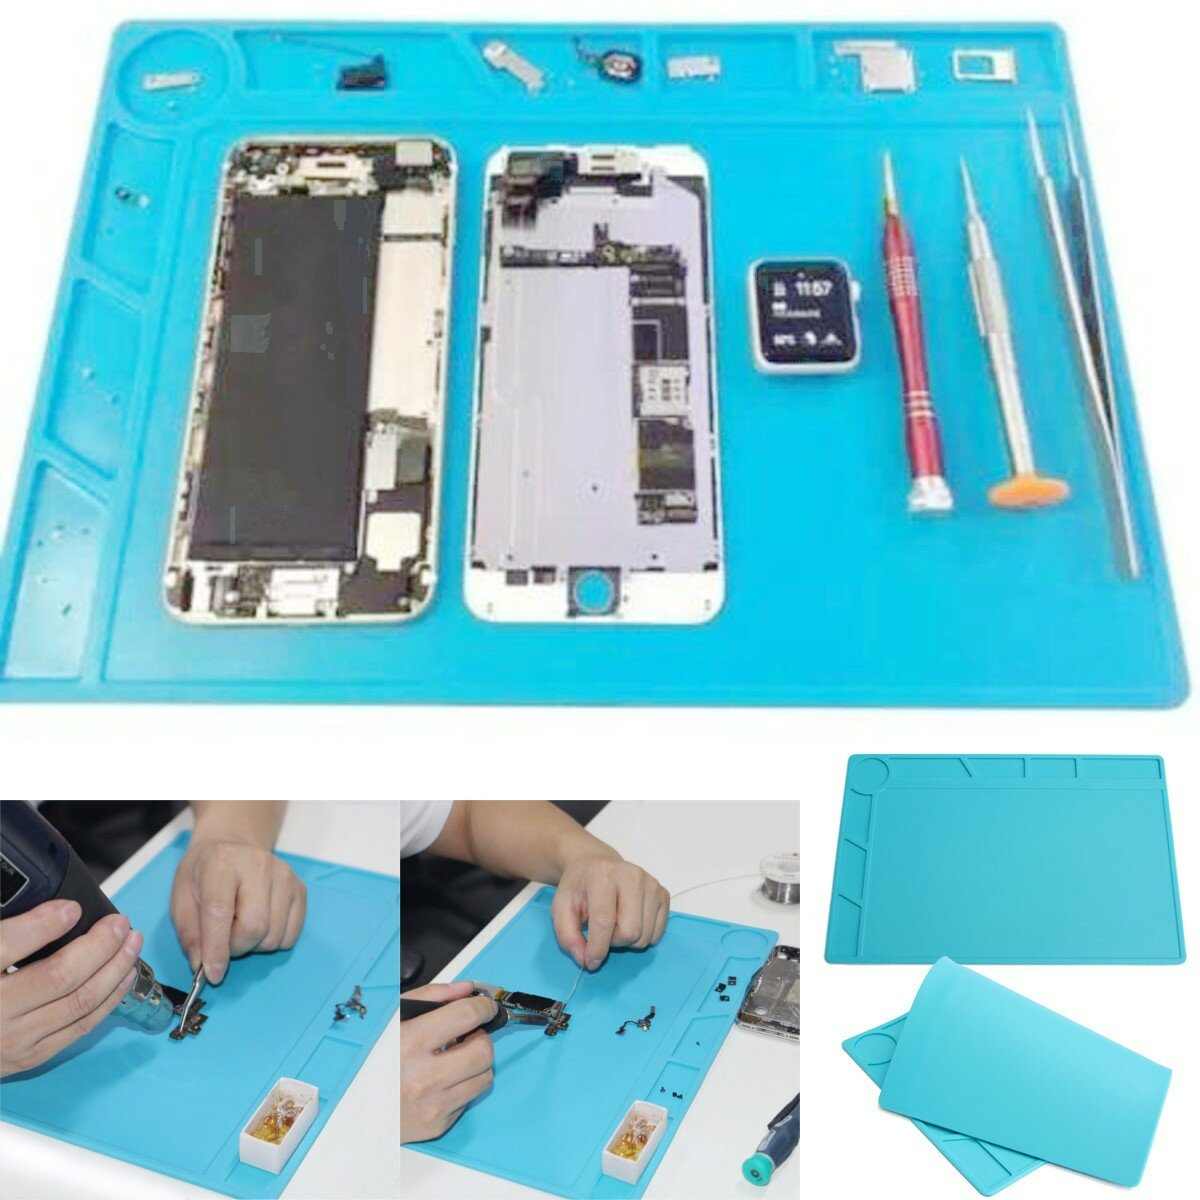 35x25cm Magnetic Heat Resistant Silicone Pad Desk Mat Maintenance Platform Heat Insulation BGA Soldering Repair Station - 4